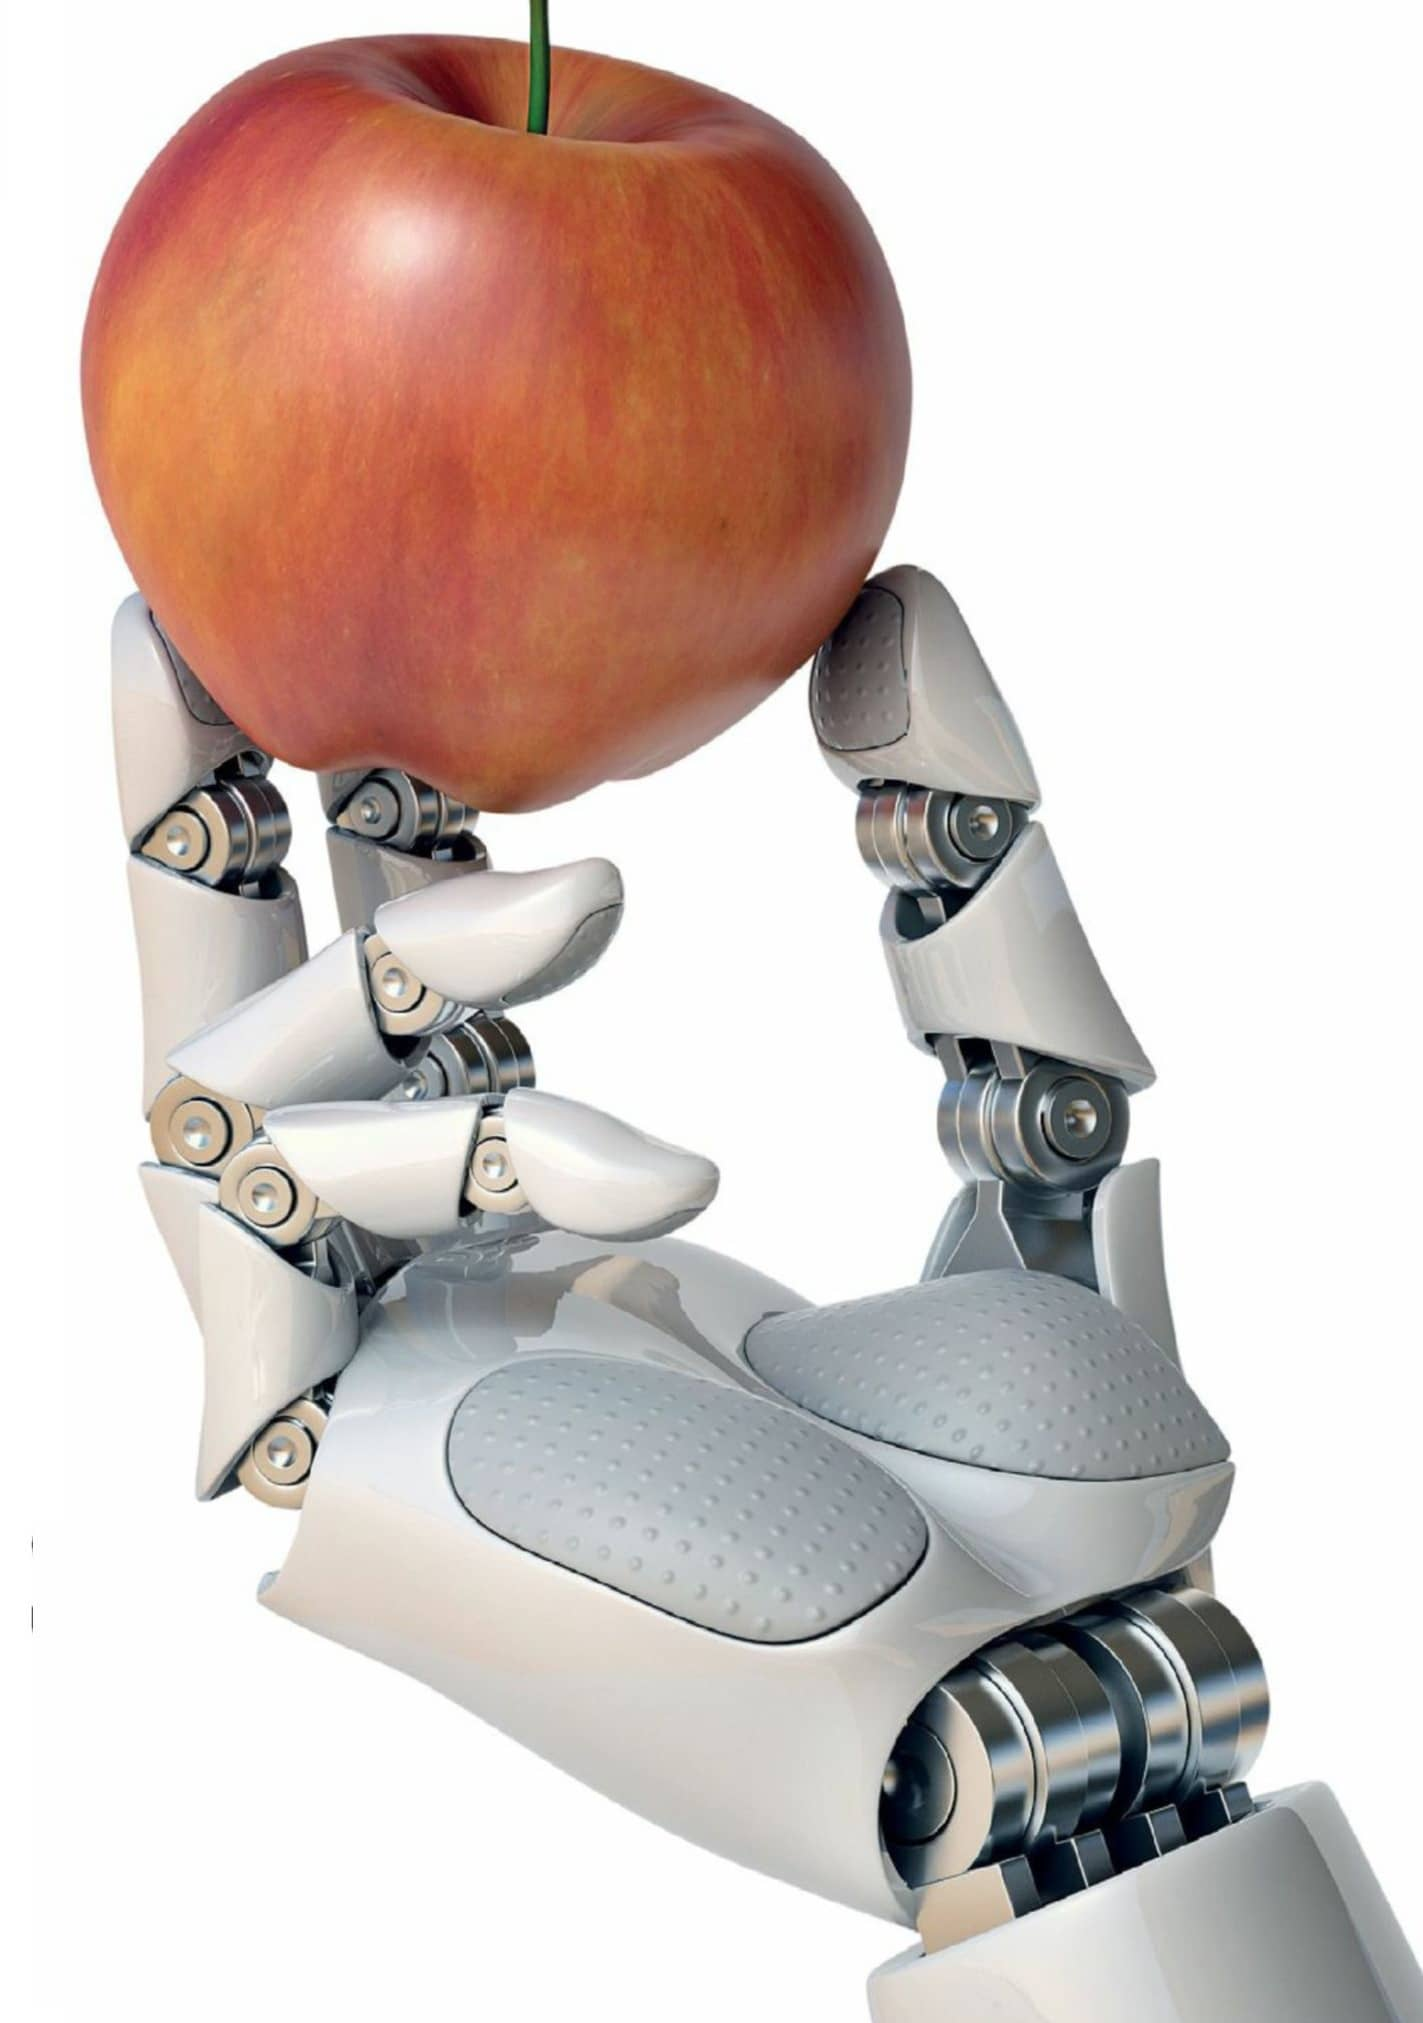 From Apples To Androids